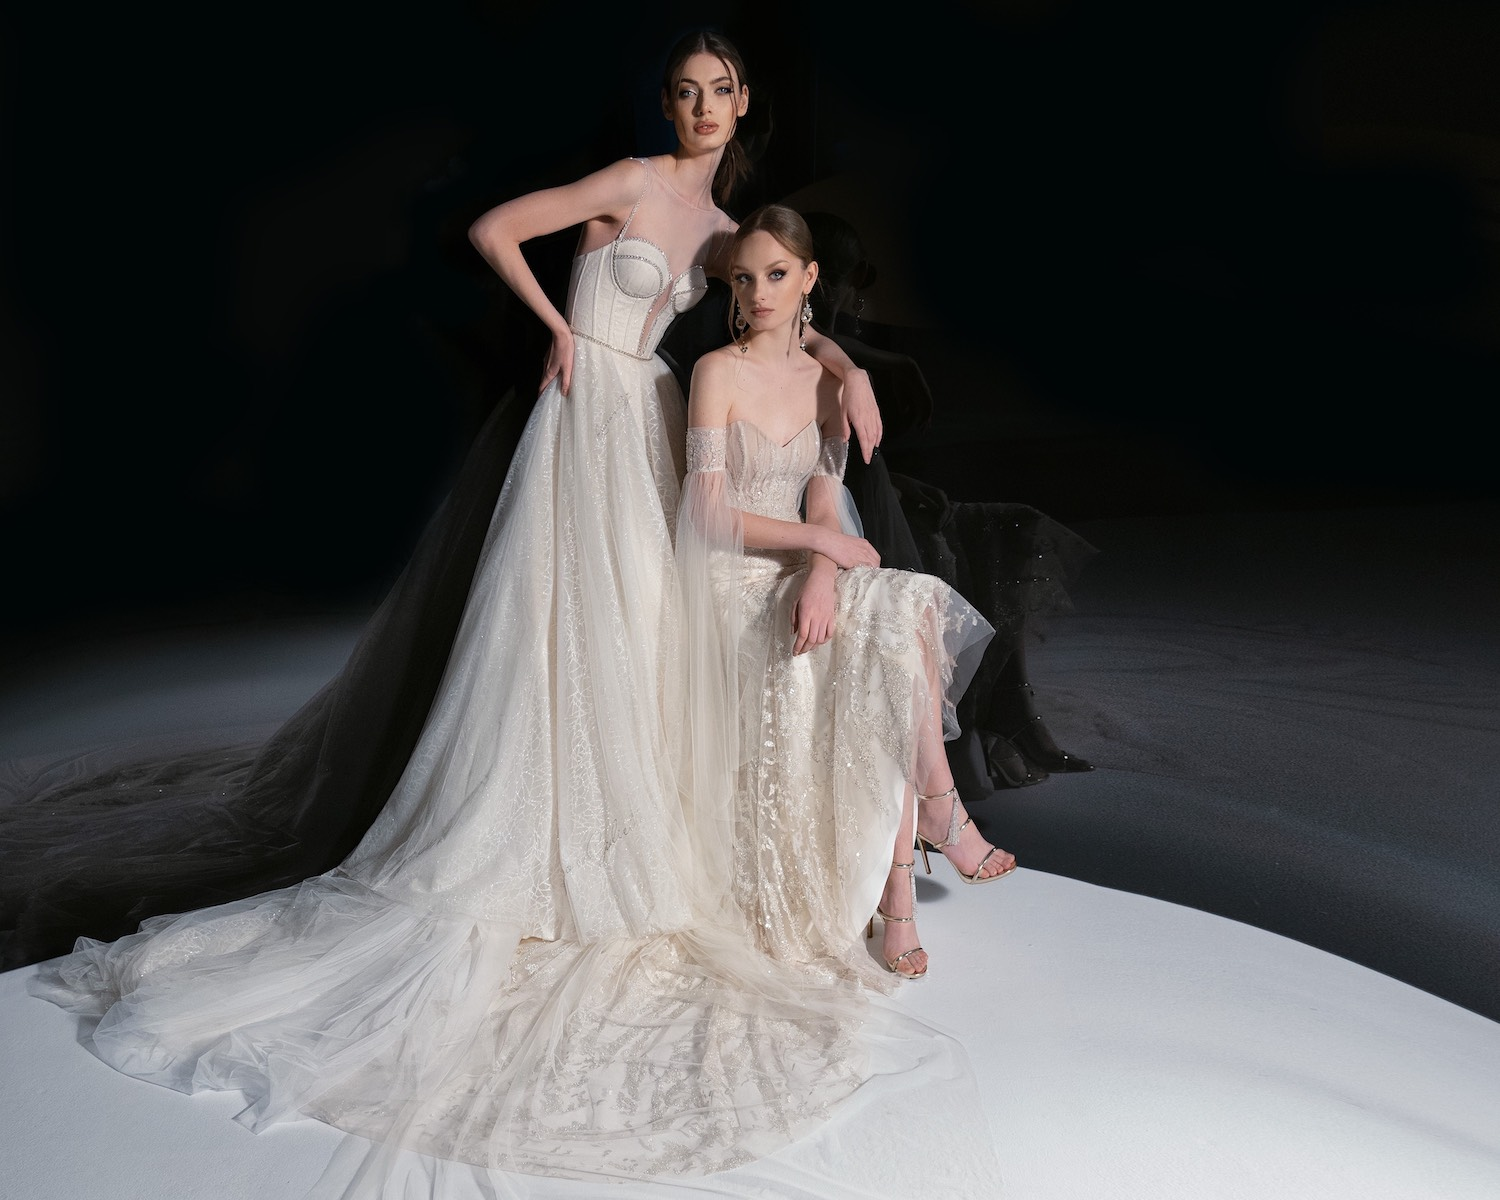 Wedding Dress Sale in Toronto - papilio boutique